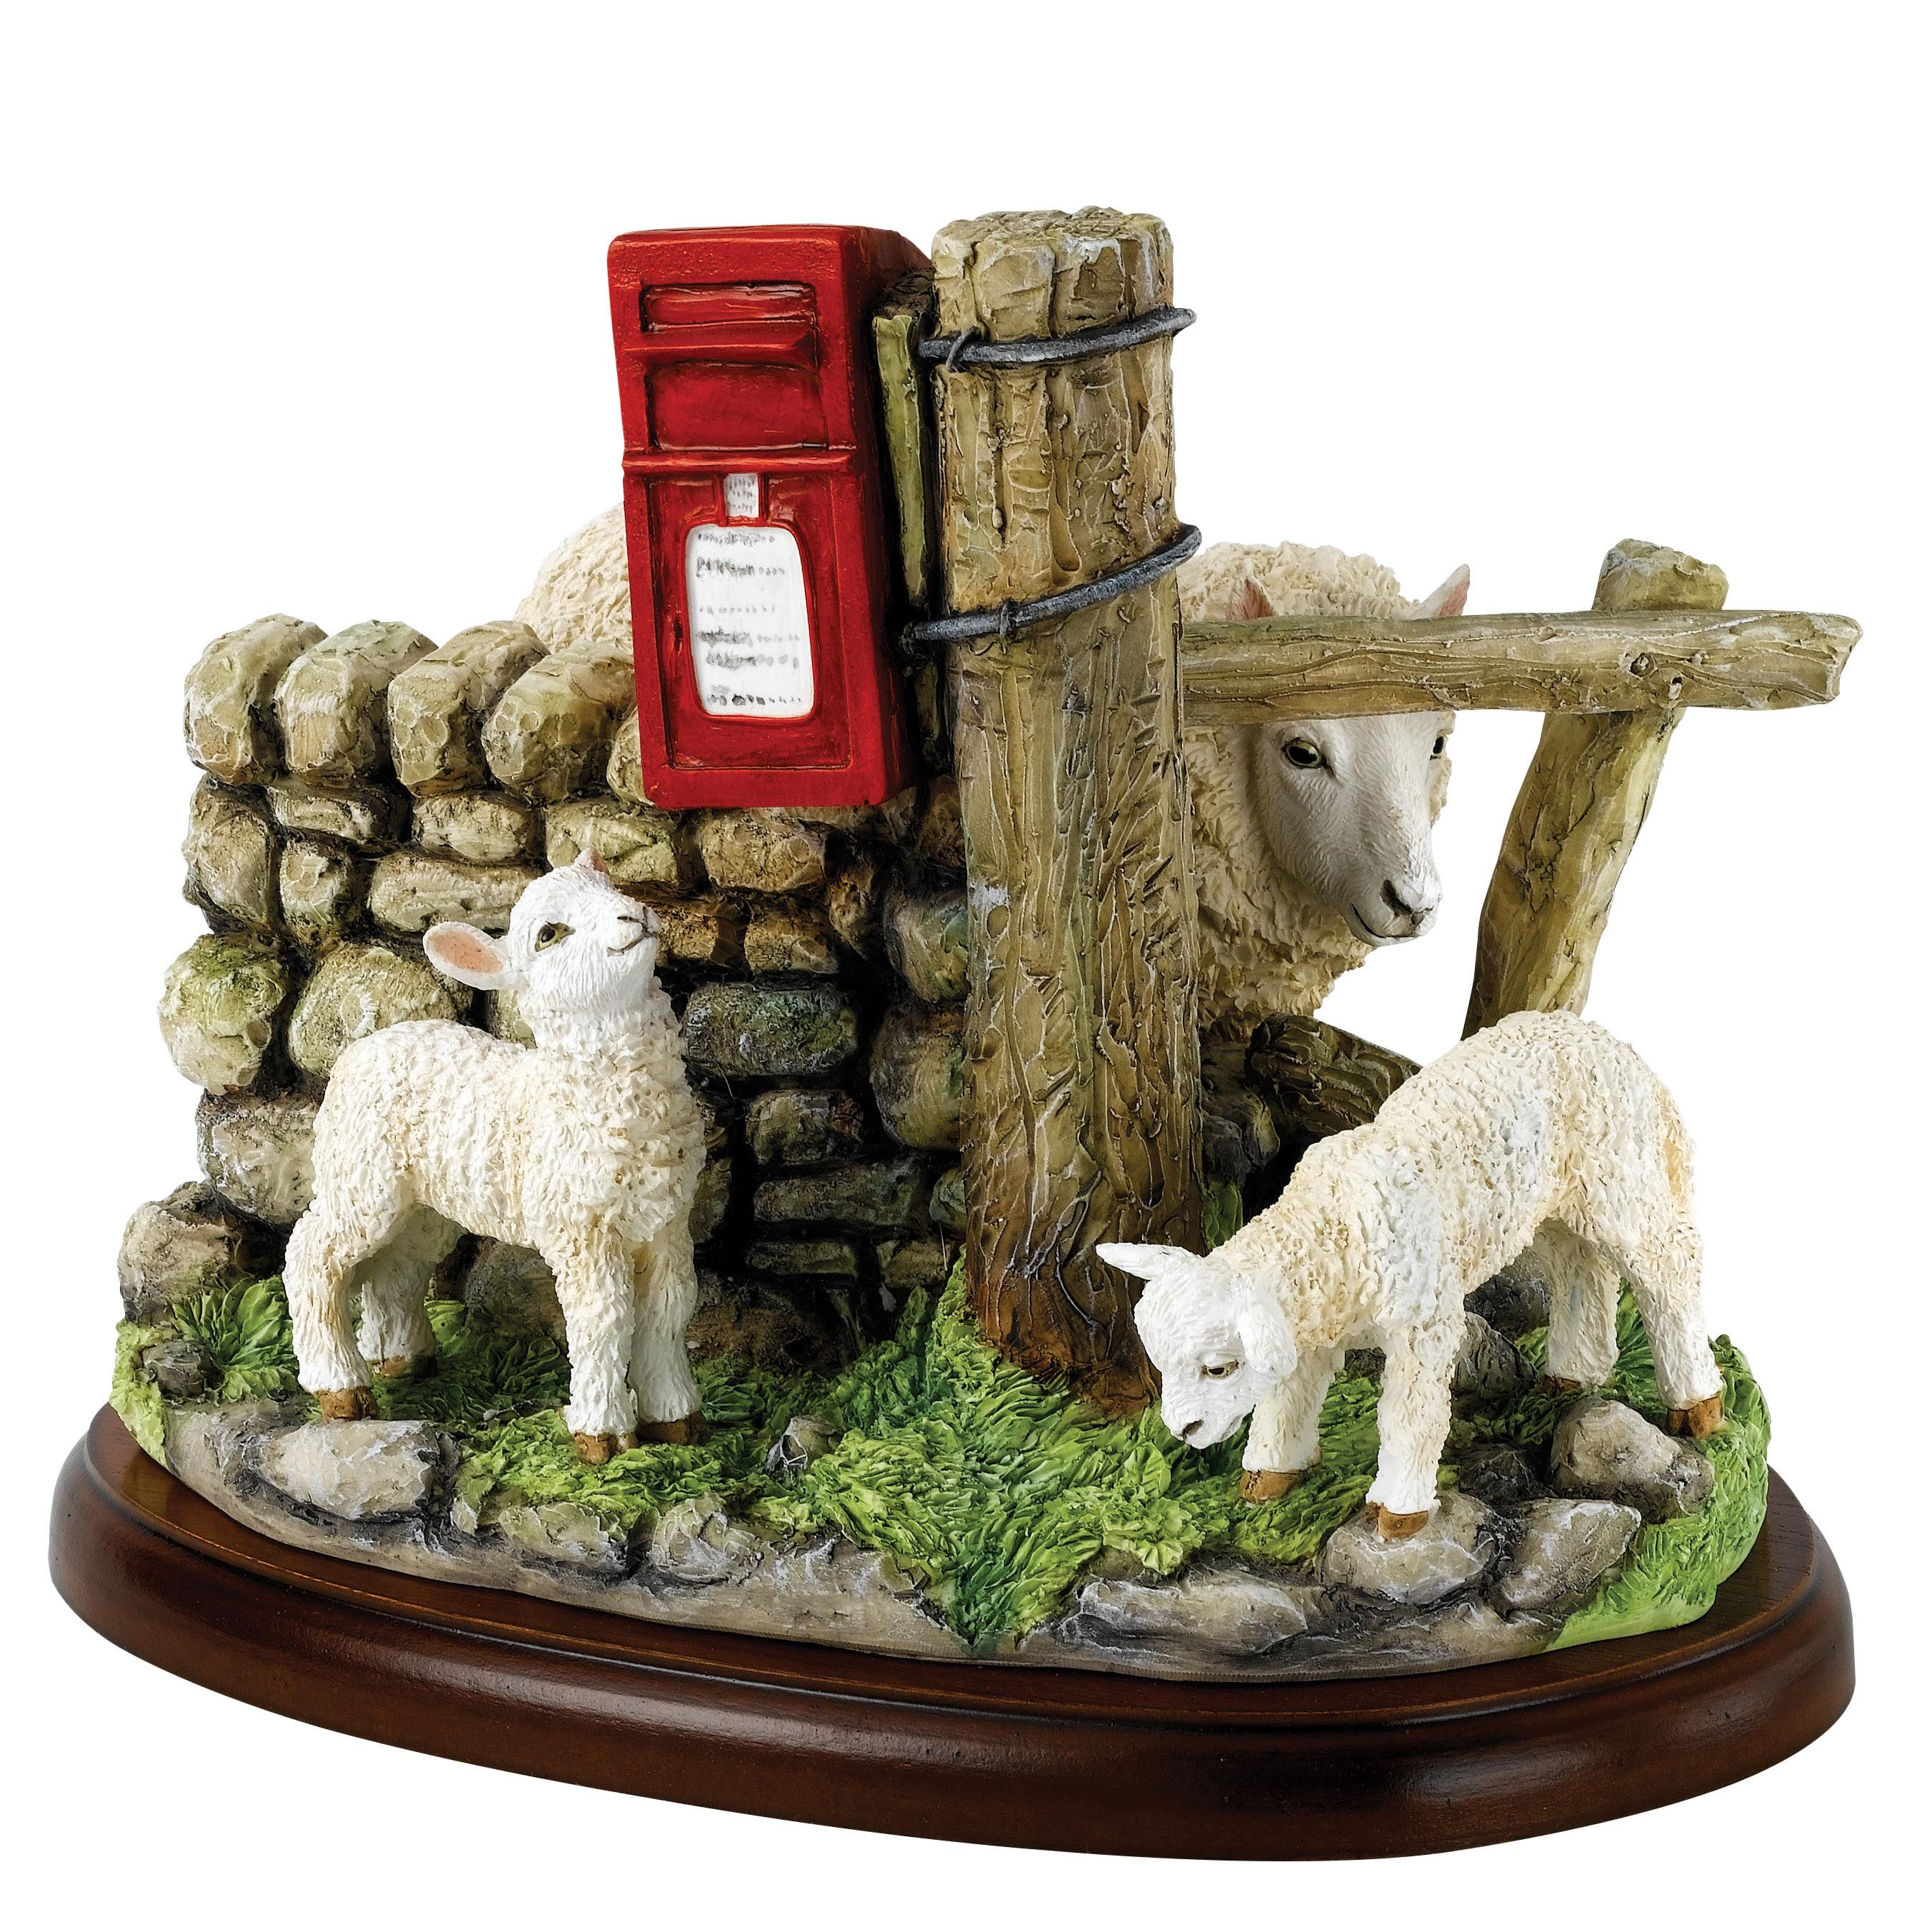 Pin by Lyn Wooley on Easter Sheep art, Animal figurines